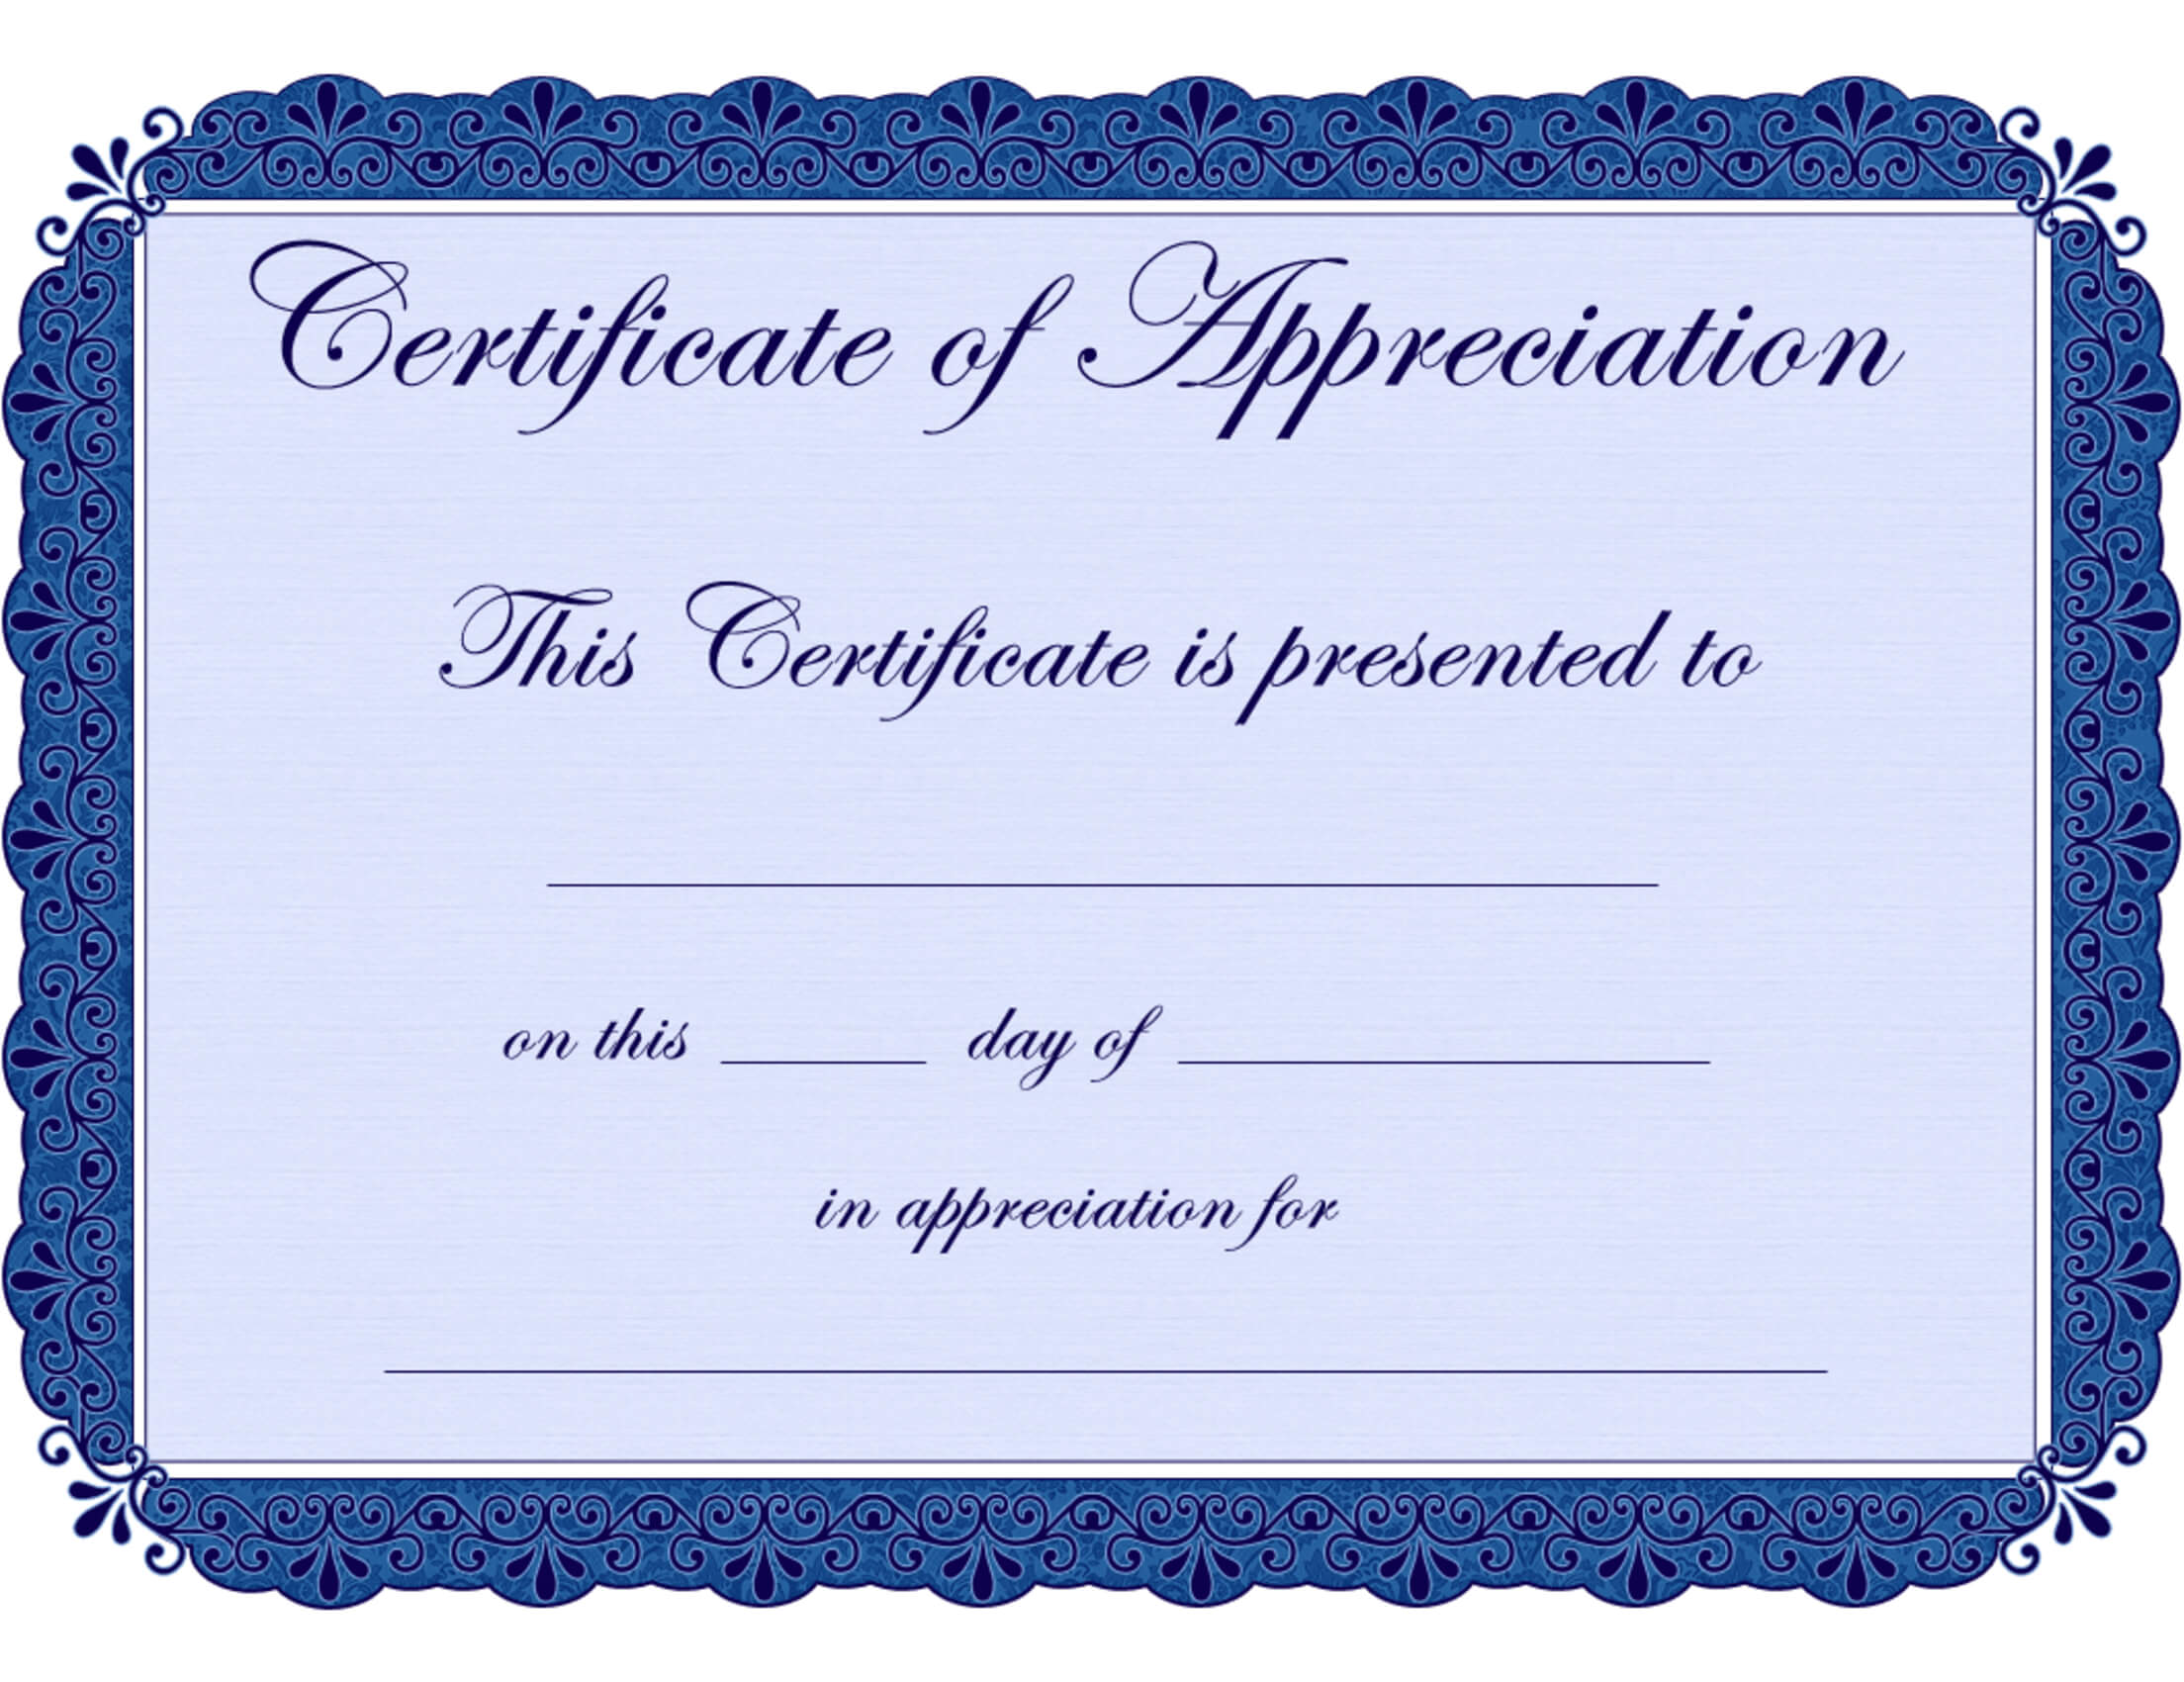 Free Printable Certificates Certificate Of Appreciation Regarding Free Student Certificate Templates